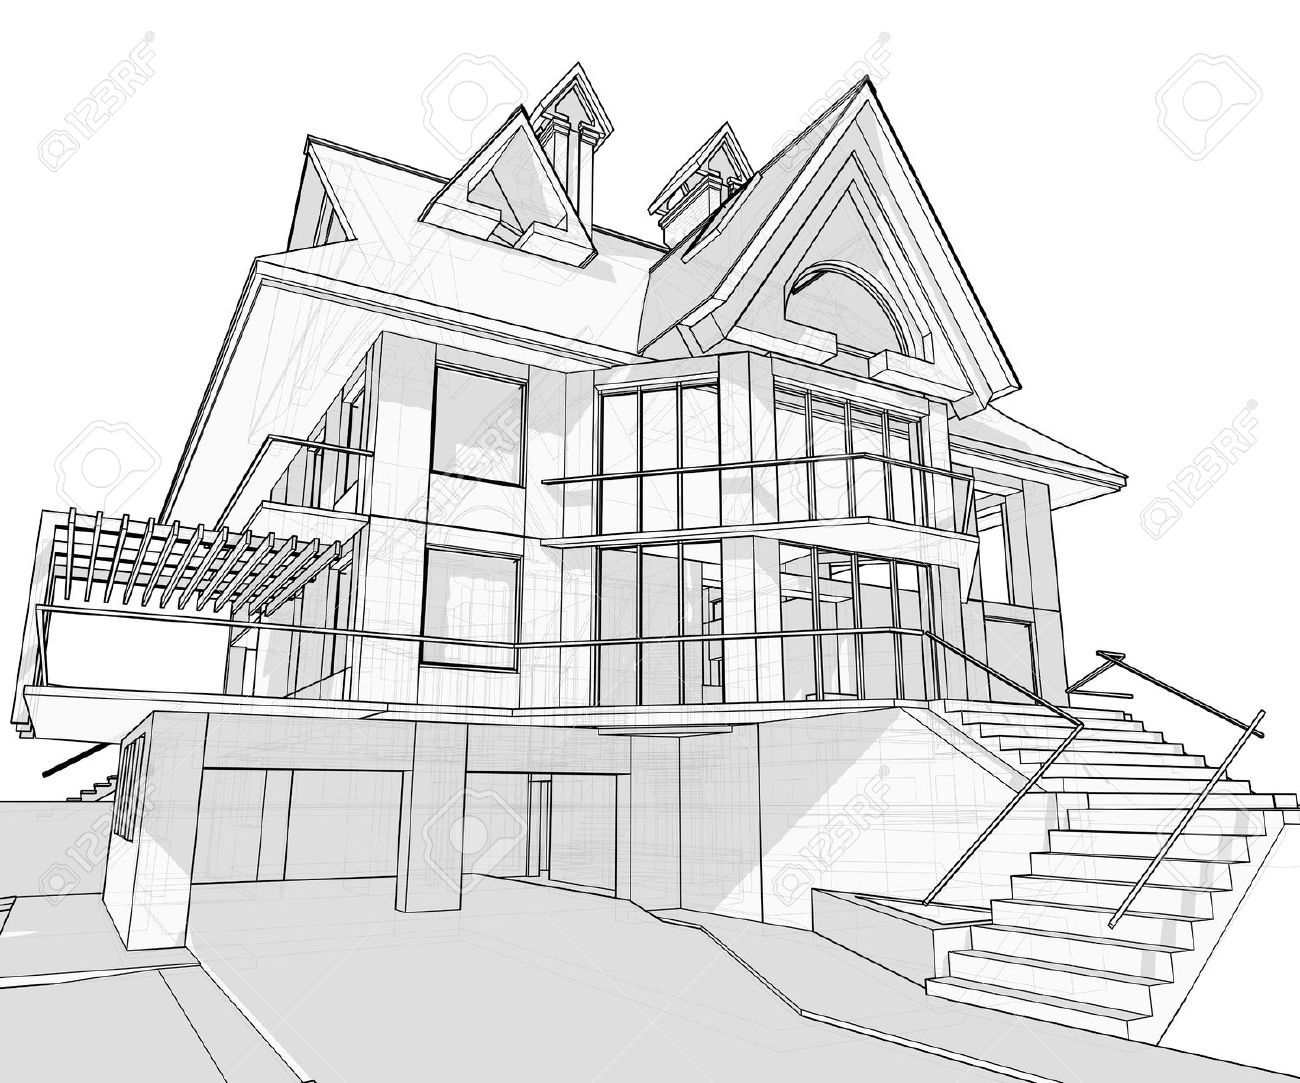 how to draw a big house ruled outline of house clipart etc a draw to big how house